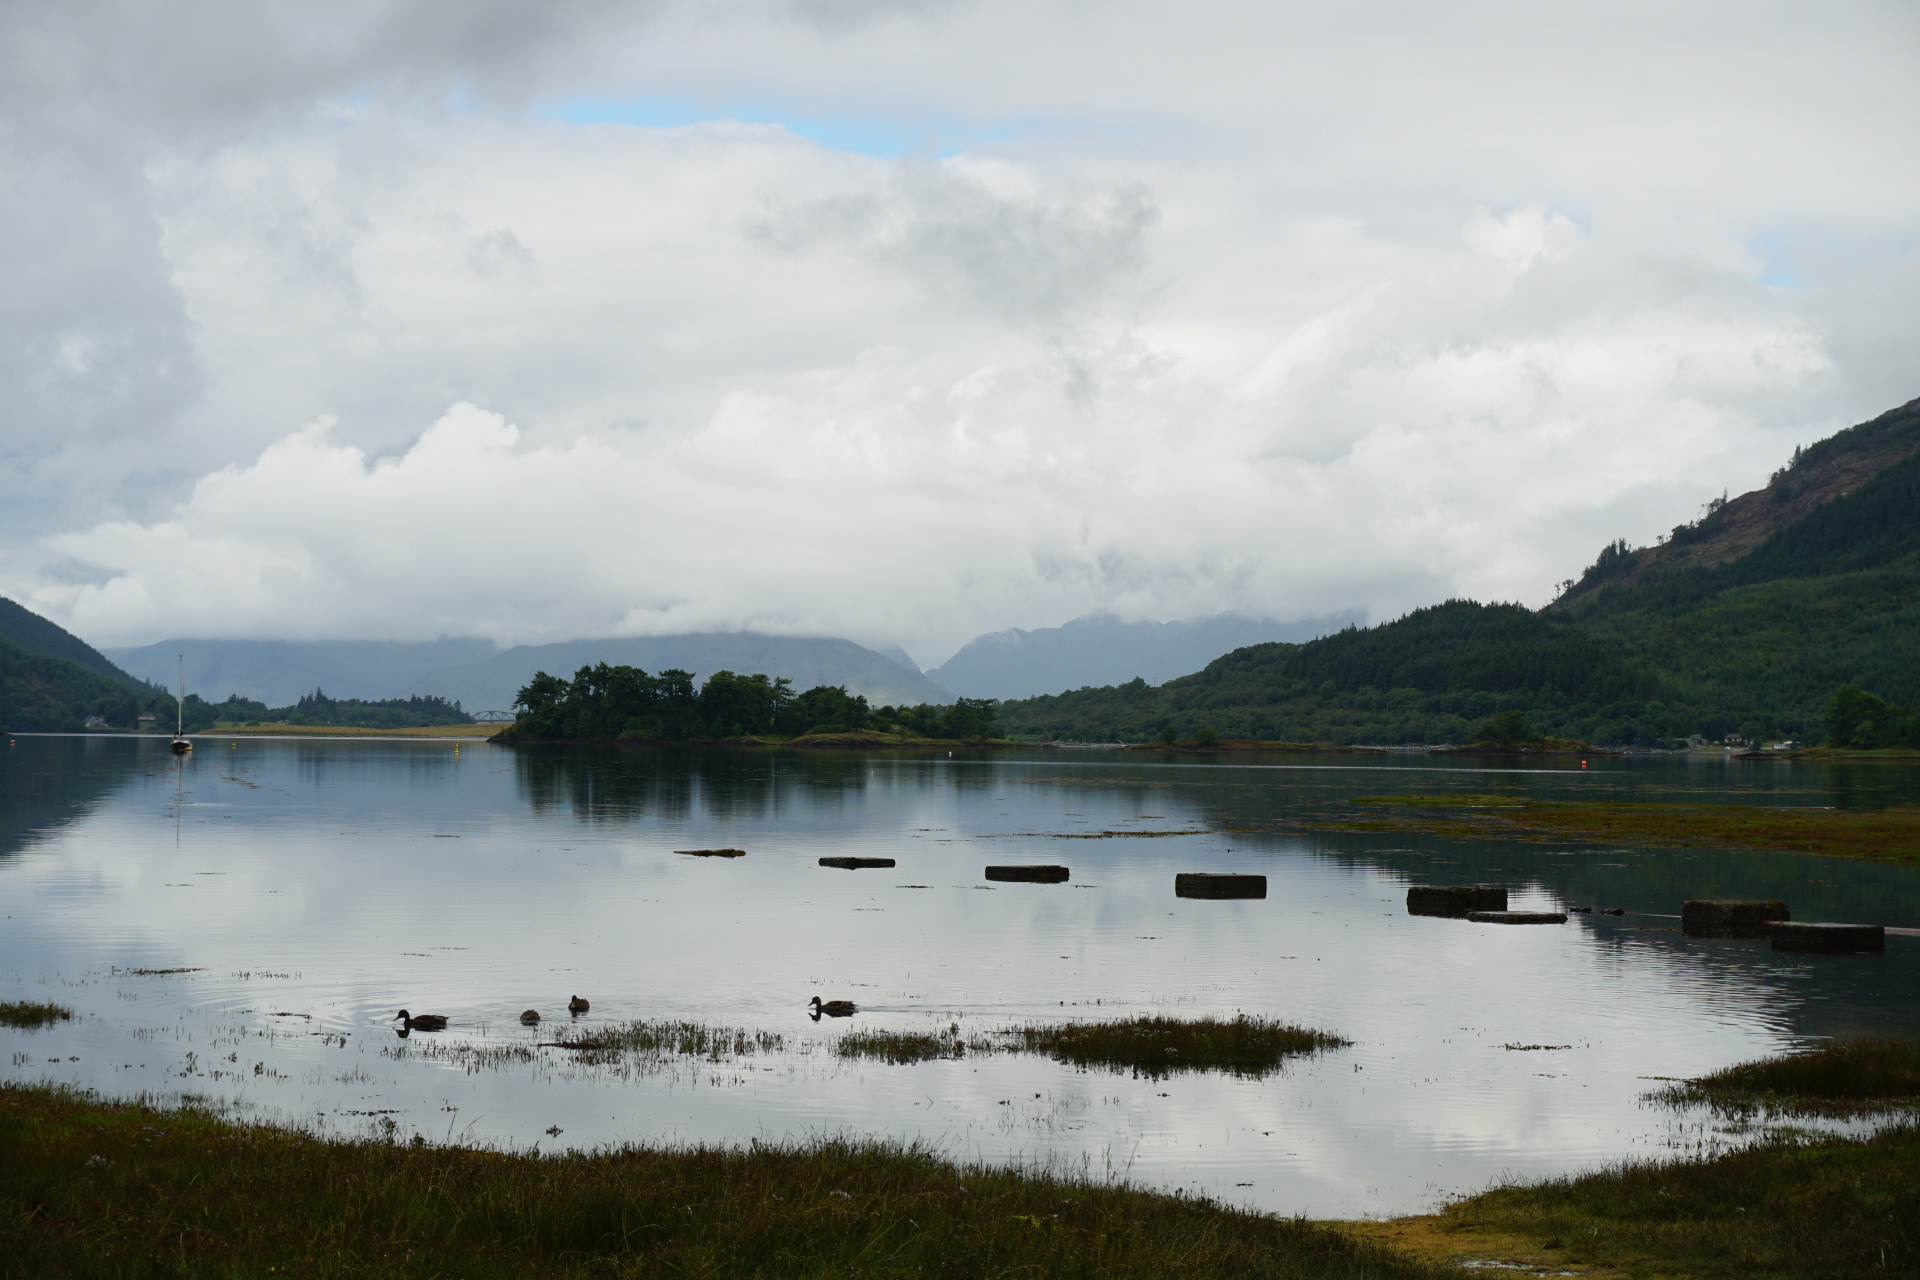 A DREICH DAY IN LATE SEPTEMBER